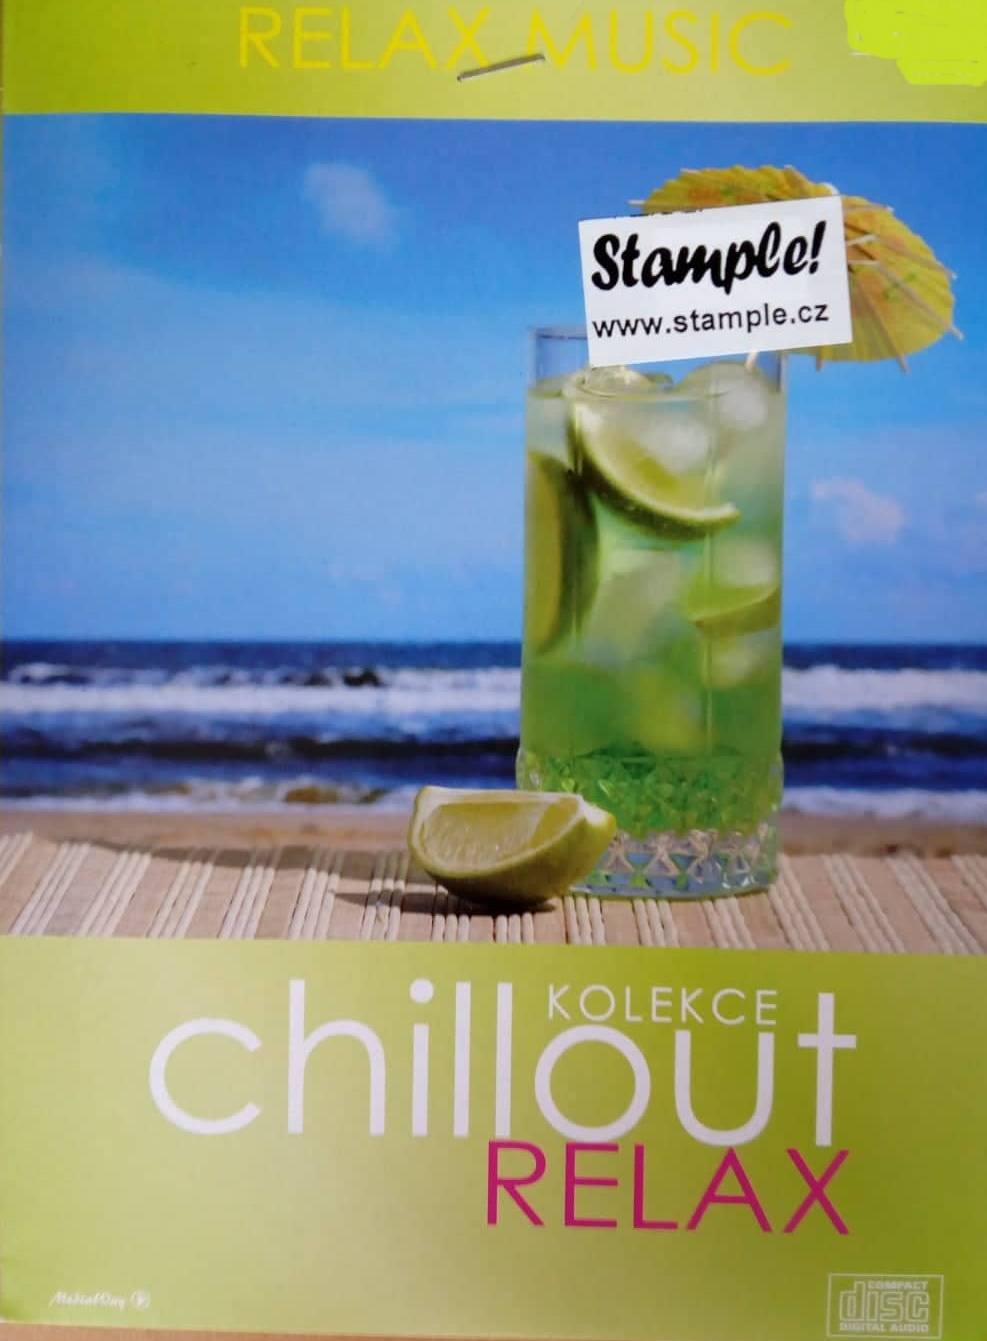 Chillout meditace - relax music CD